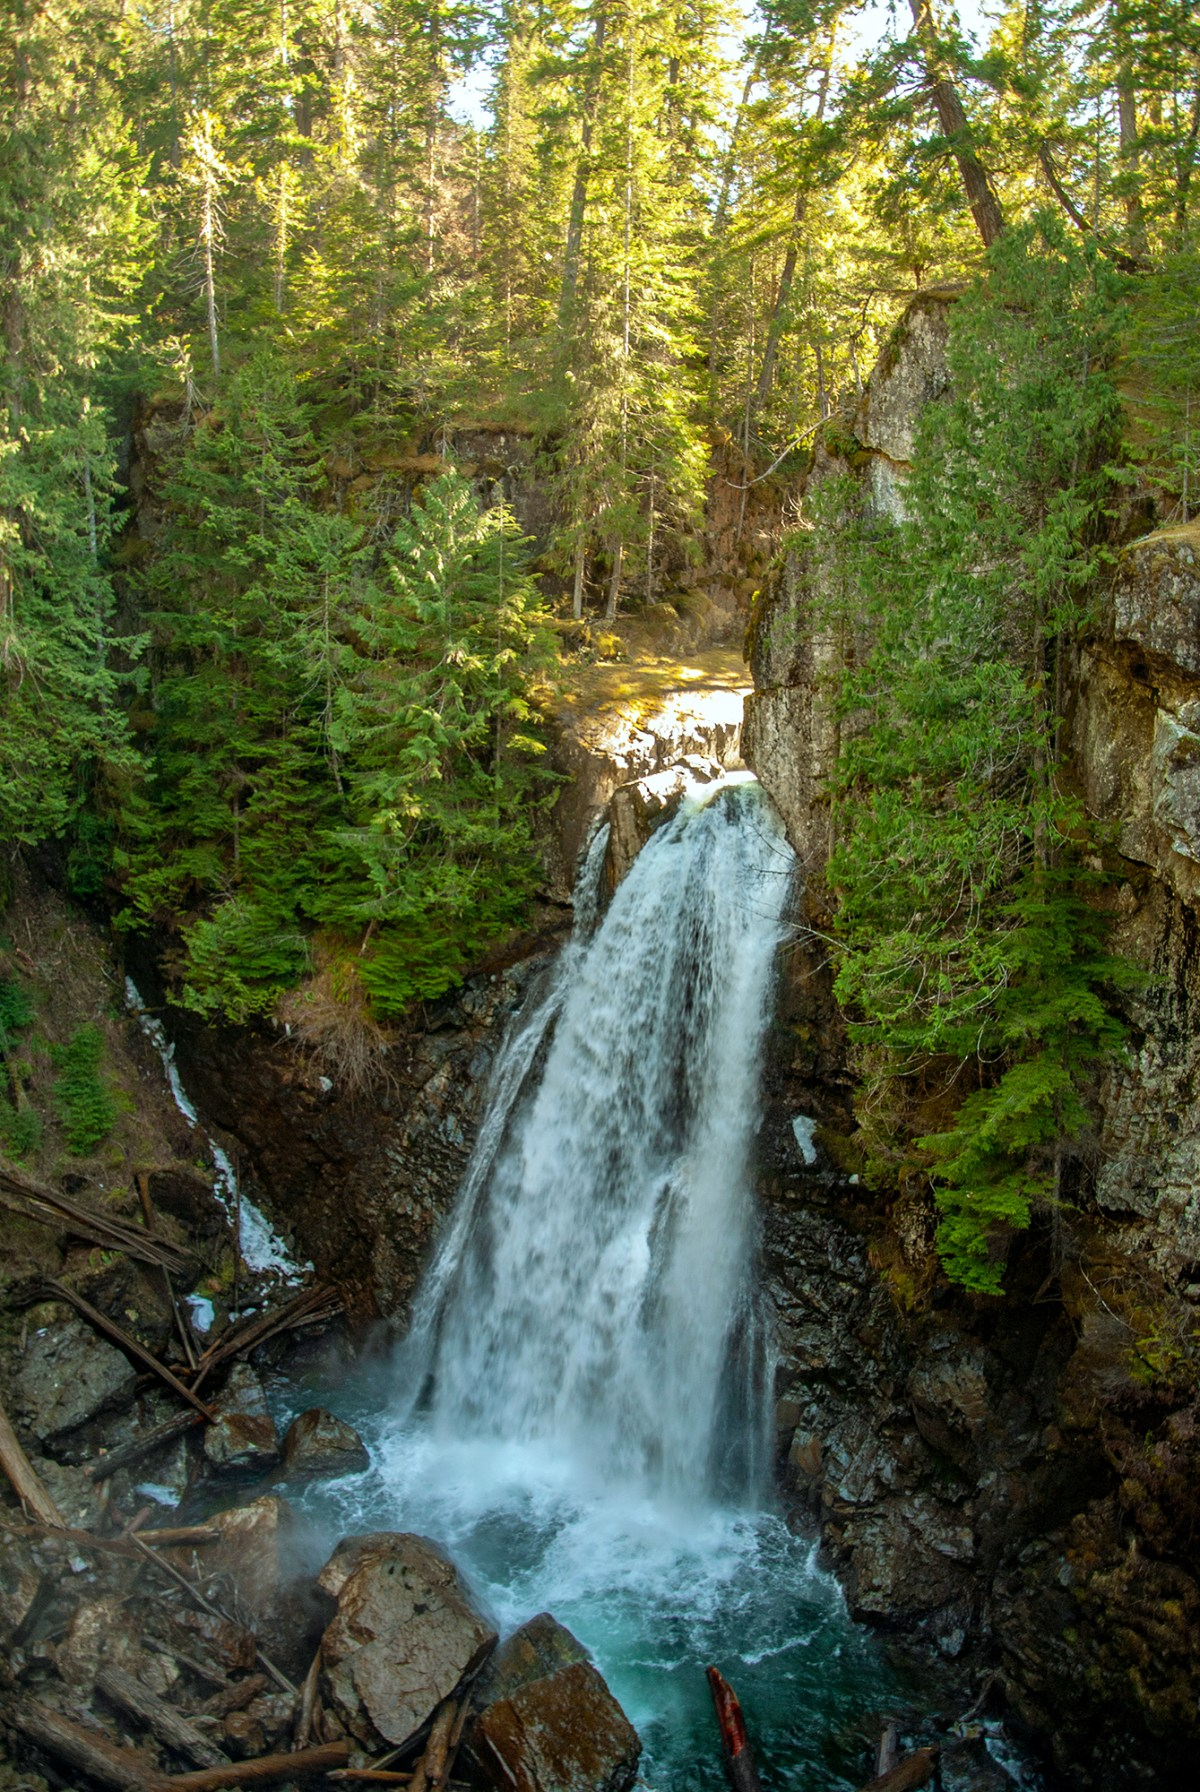 Generic Van Life - The Ultimate Vancouver Island Road Trip - Strathcona Park Lady Falls